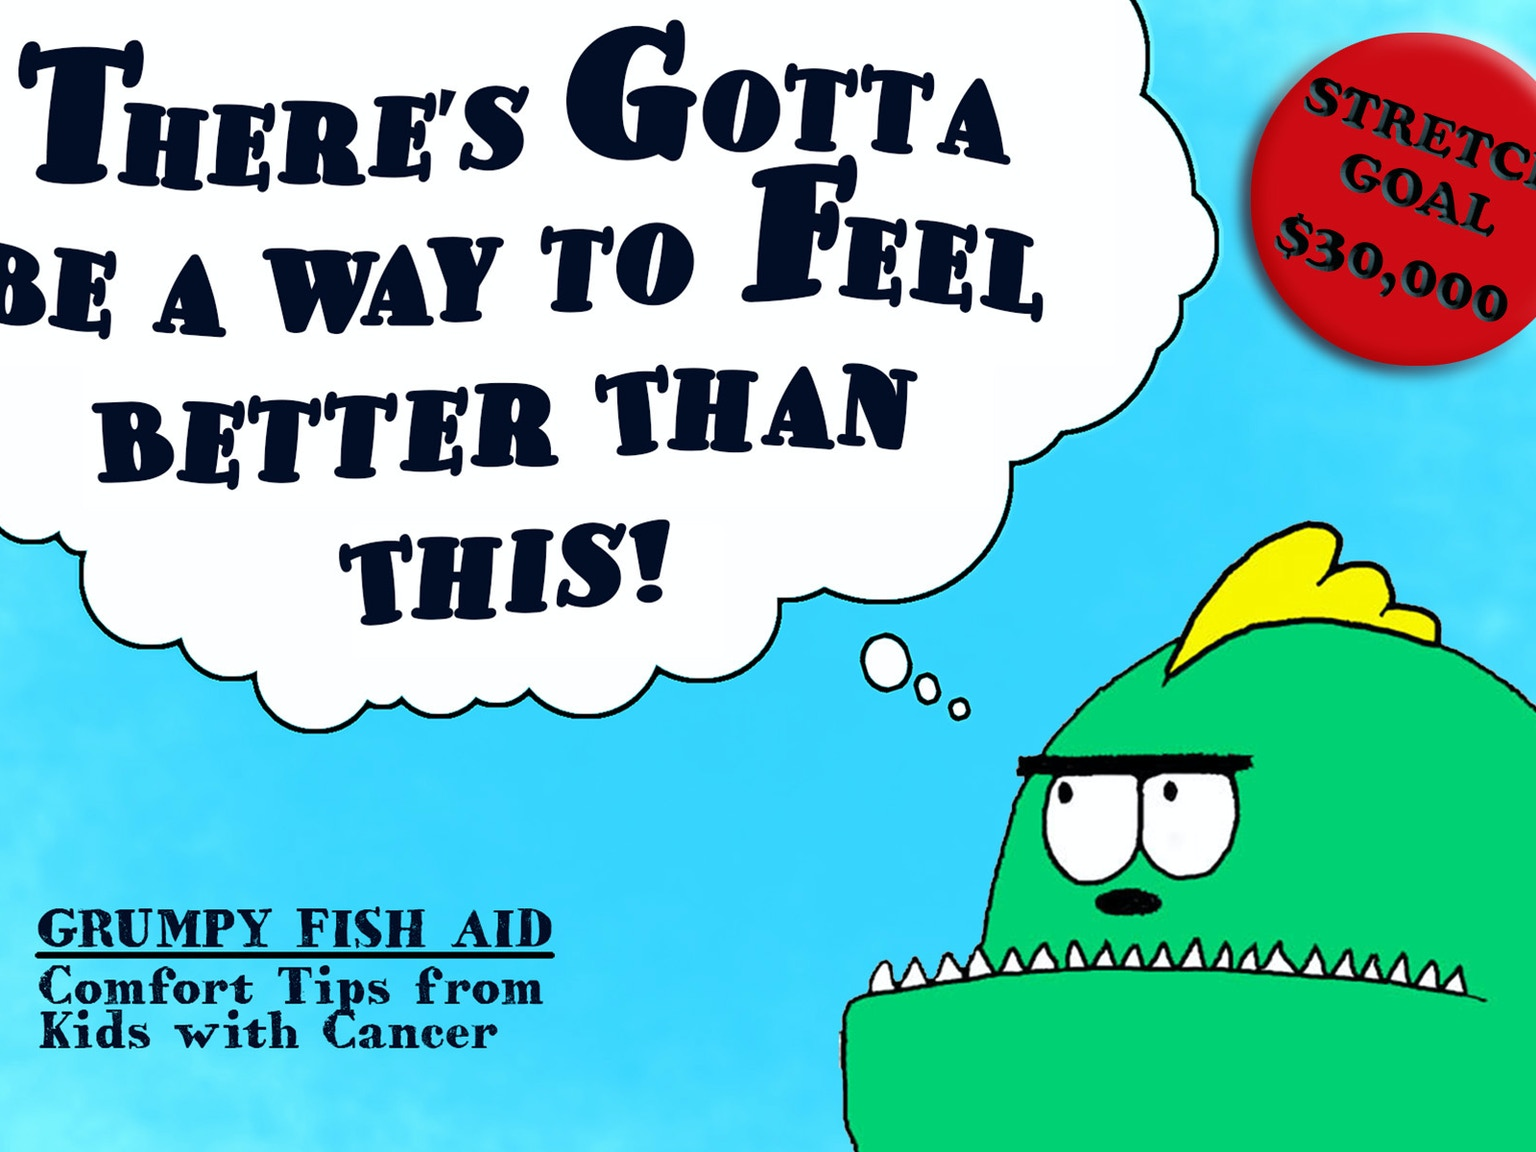 Grumpy fish aid comfort tips from kids with cancer by for Grumpy s fishing report